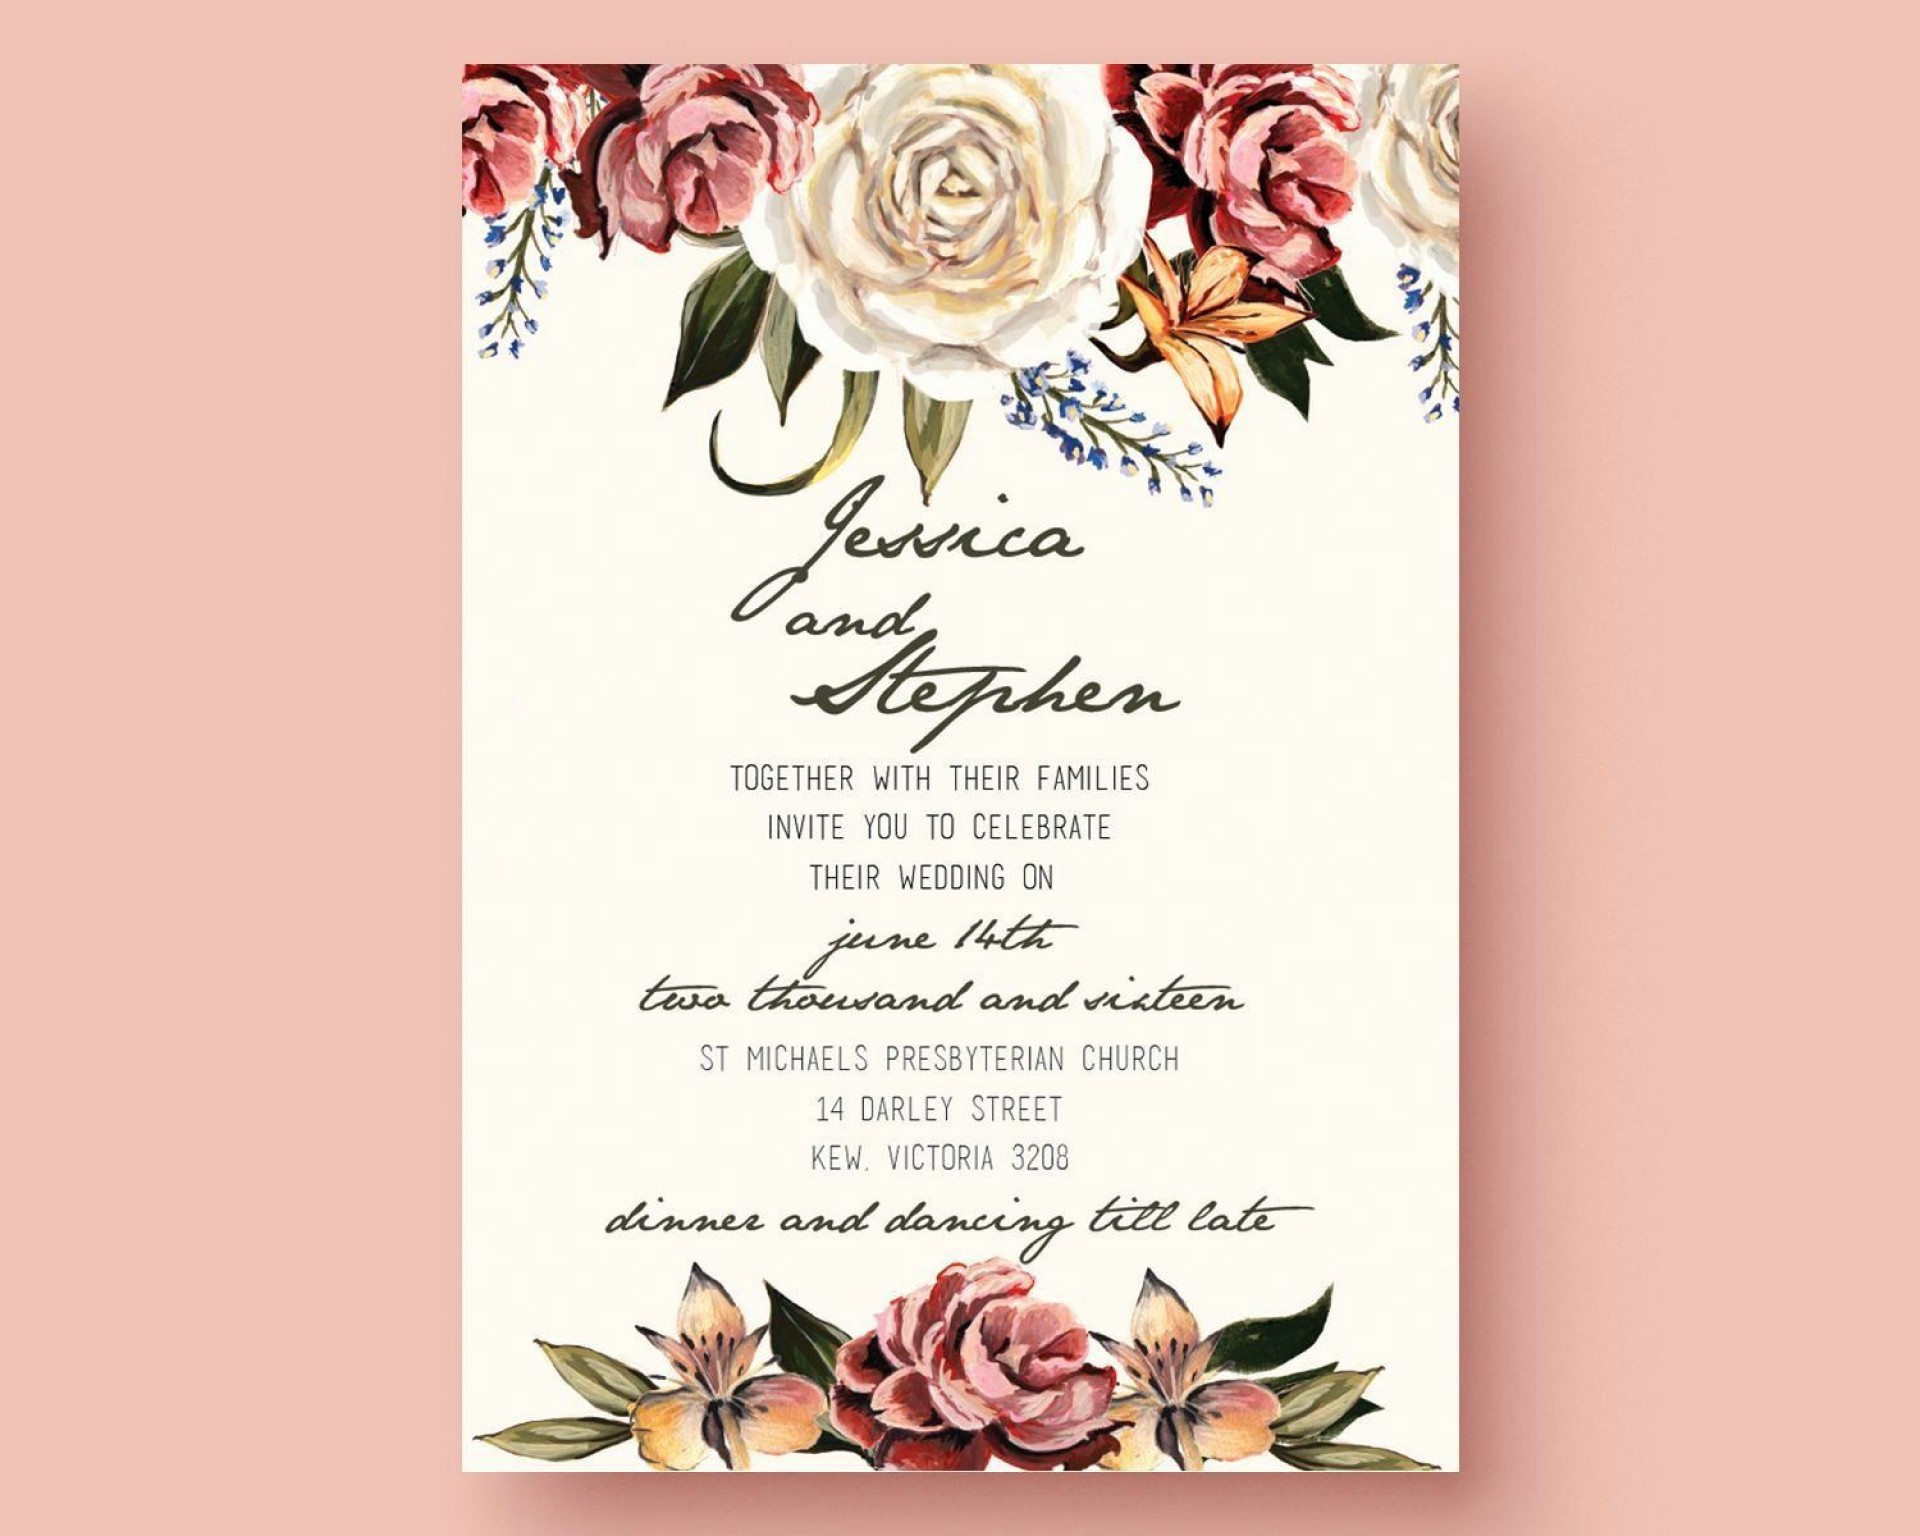 003 Impressive Free Download Wedding Invitation Template For Word Idea  Indian Microsoft1920